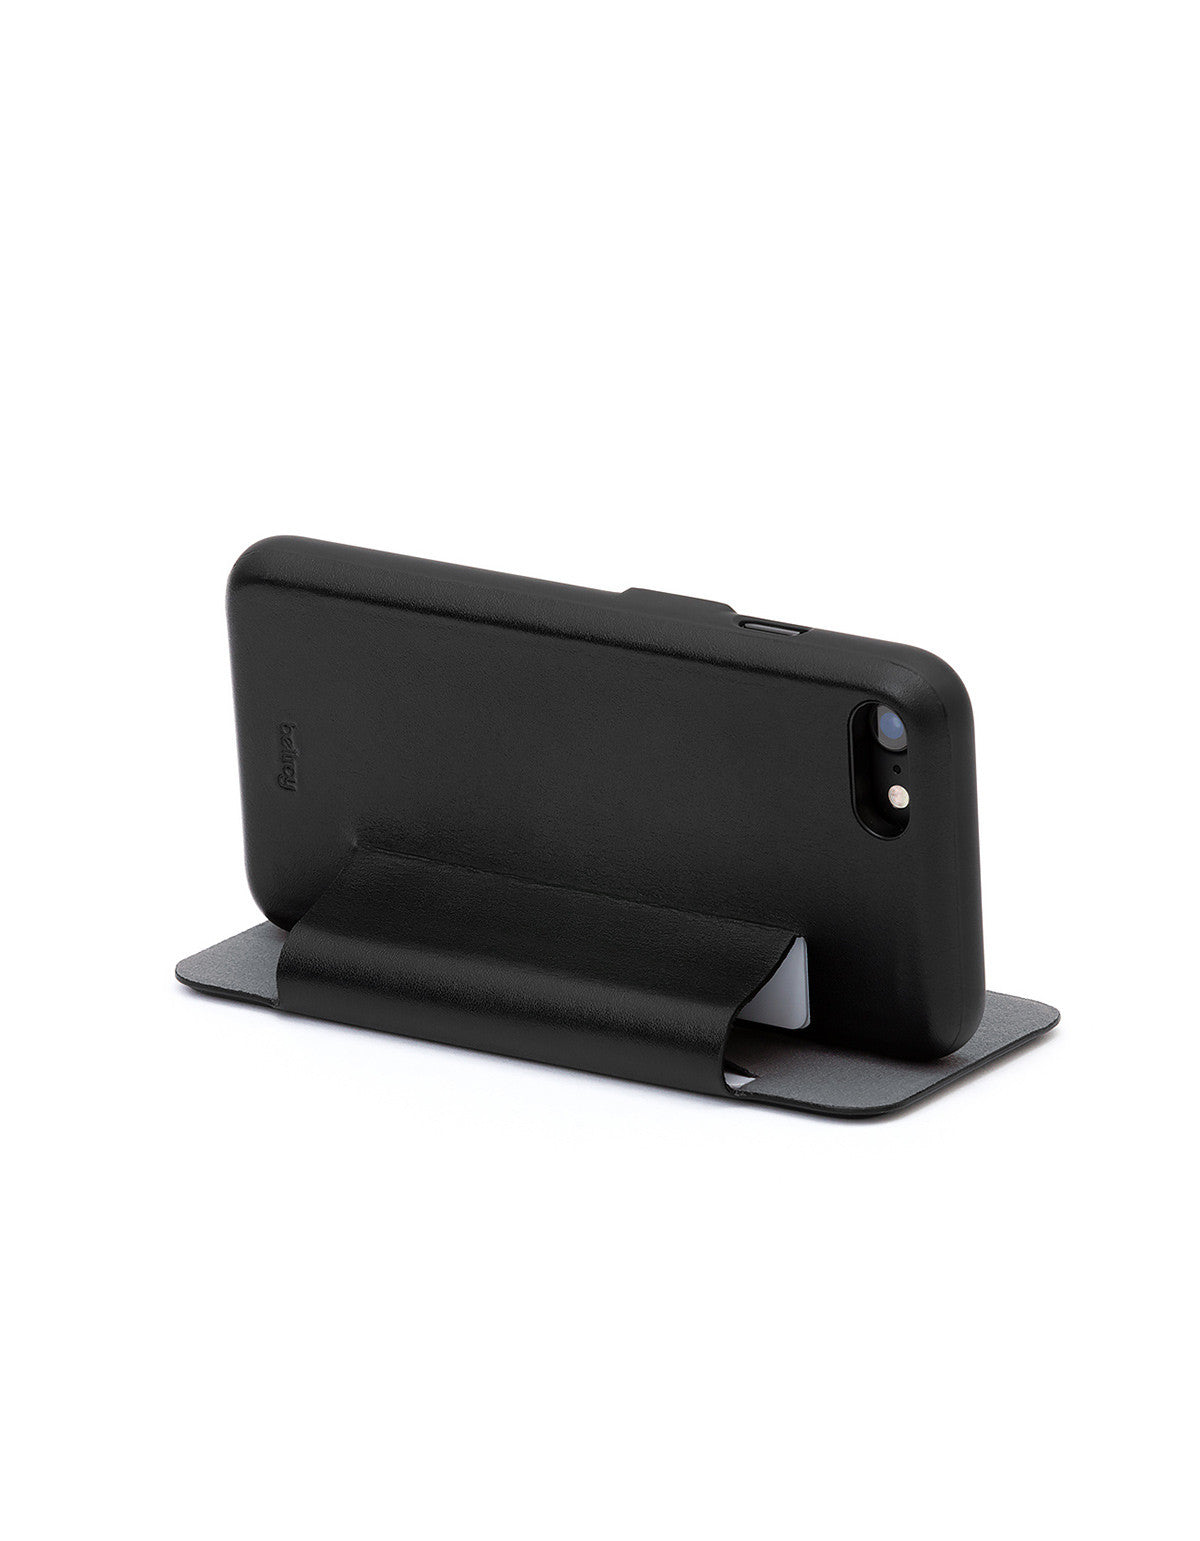 Bellroy Phone Wallet i7 Black - Still Life - 4